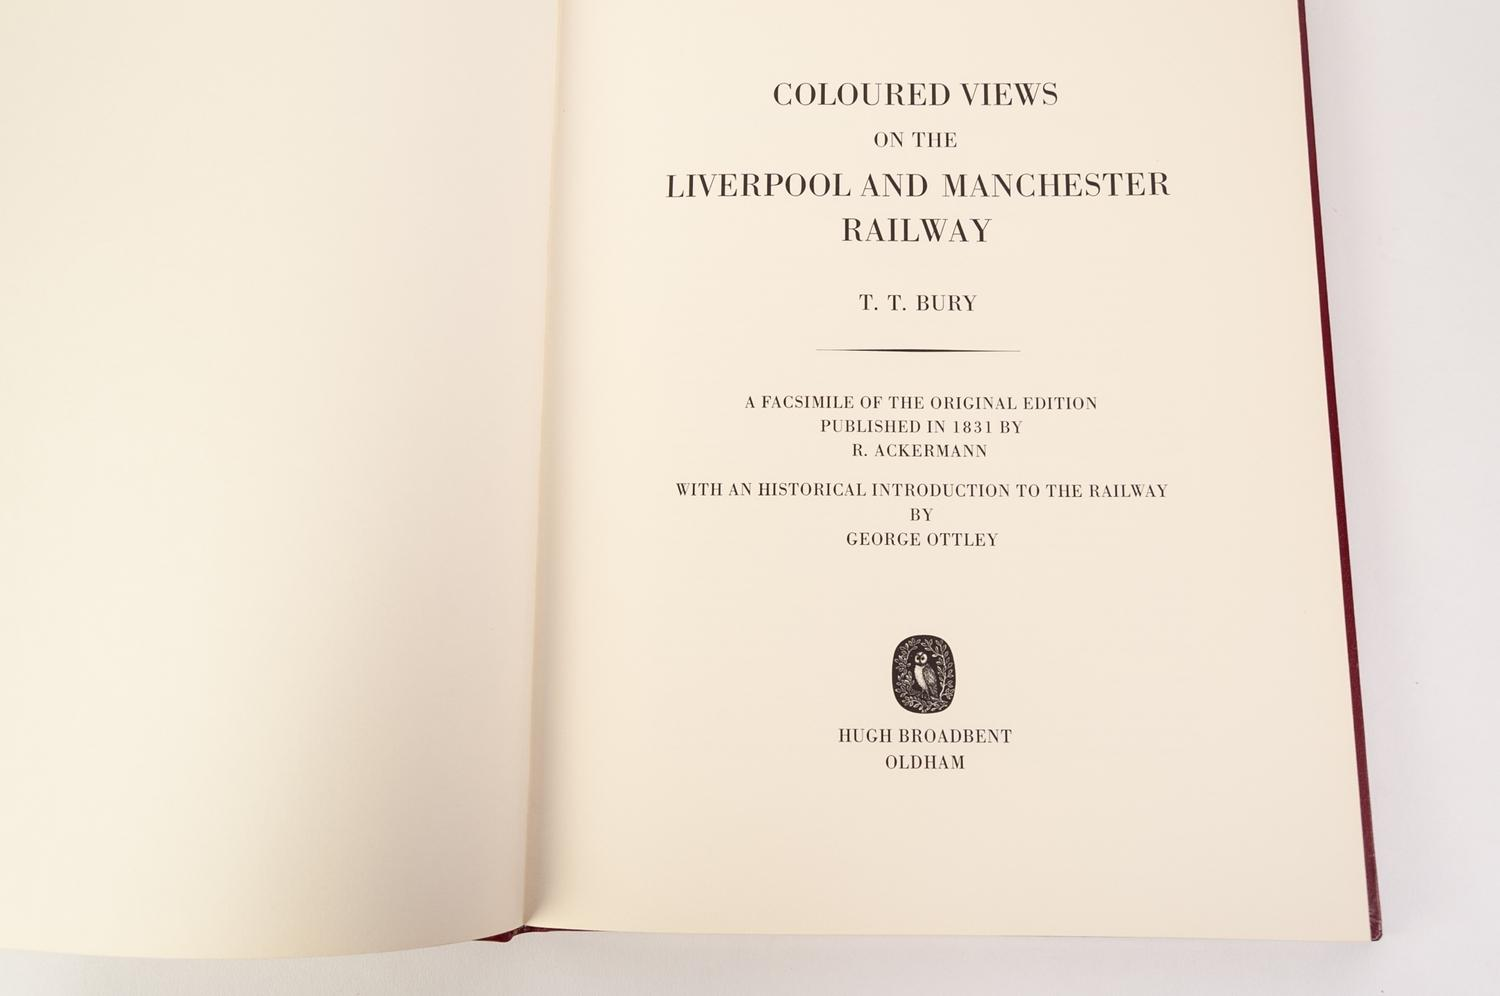 Lot 39 - BURY TT COLOURED VIEWS OF THE LIVERPOOL - MANCHESTER RAILWAY. Broadbent reprint 1 of 250 copies